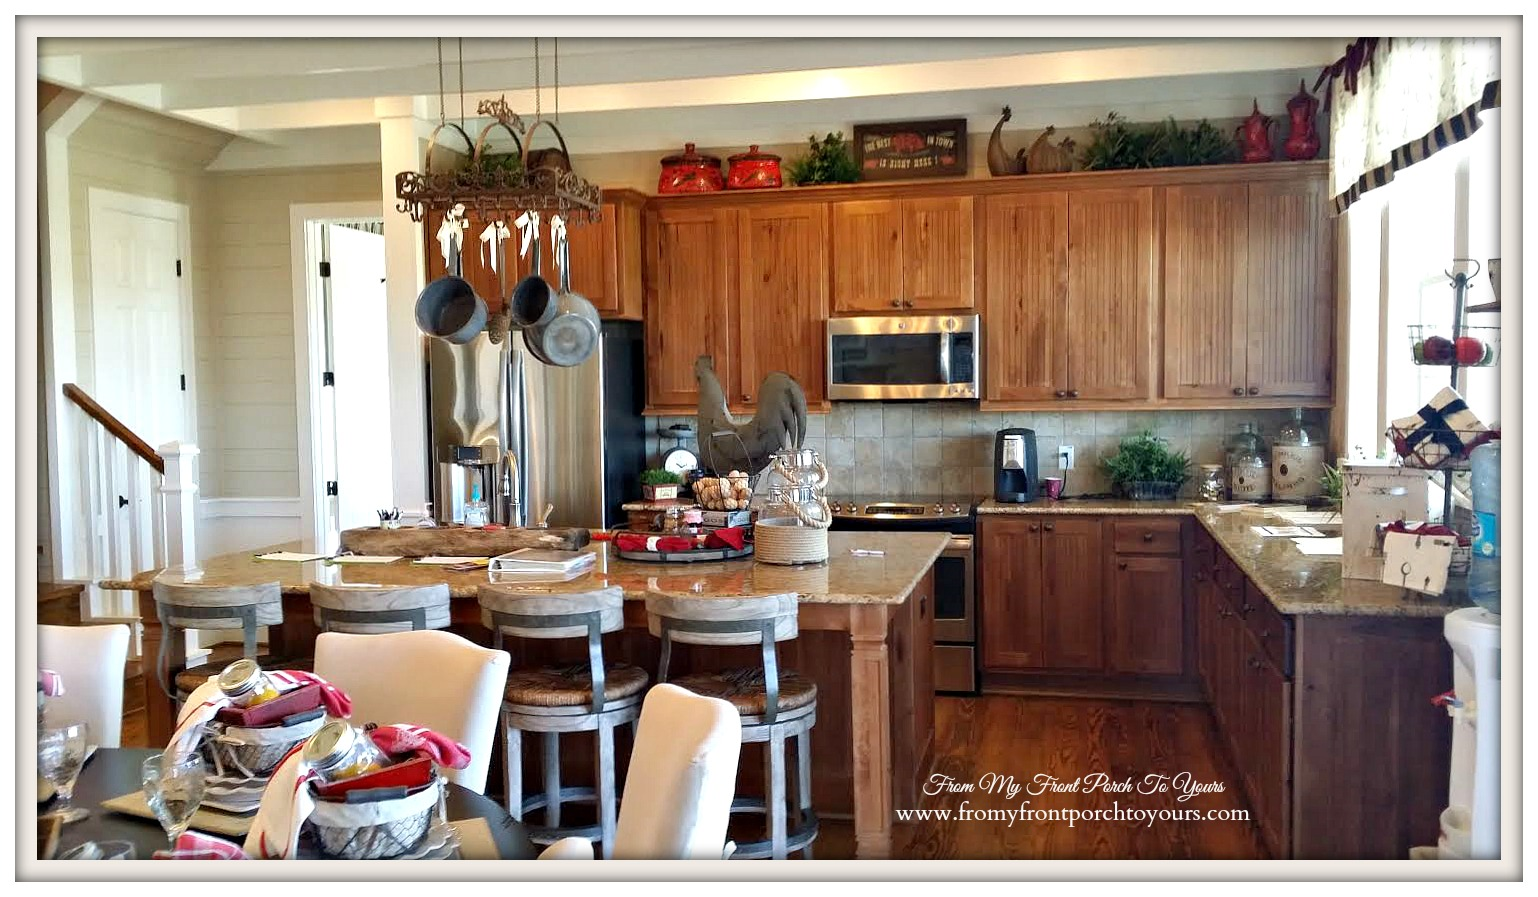 Texas Farmhouse Kitchen-RoundTop Texas-Trendmaker Homes-From My Front Porch To Yours